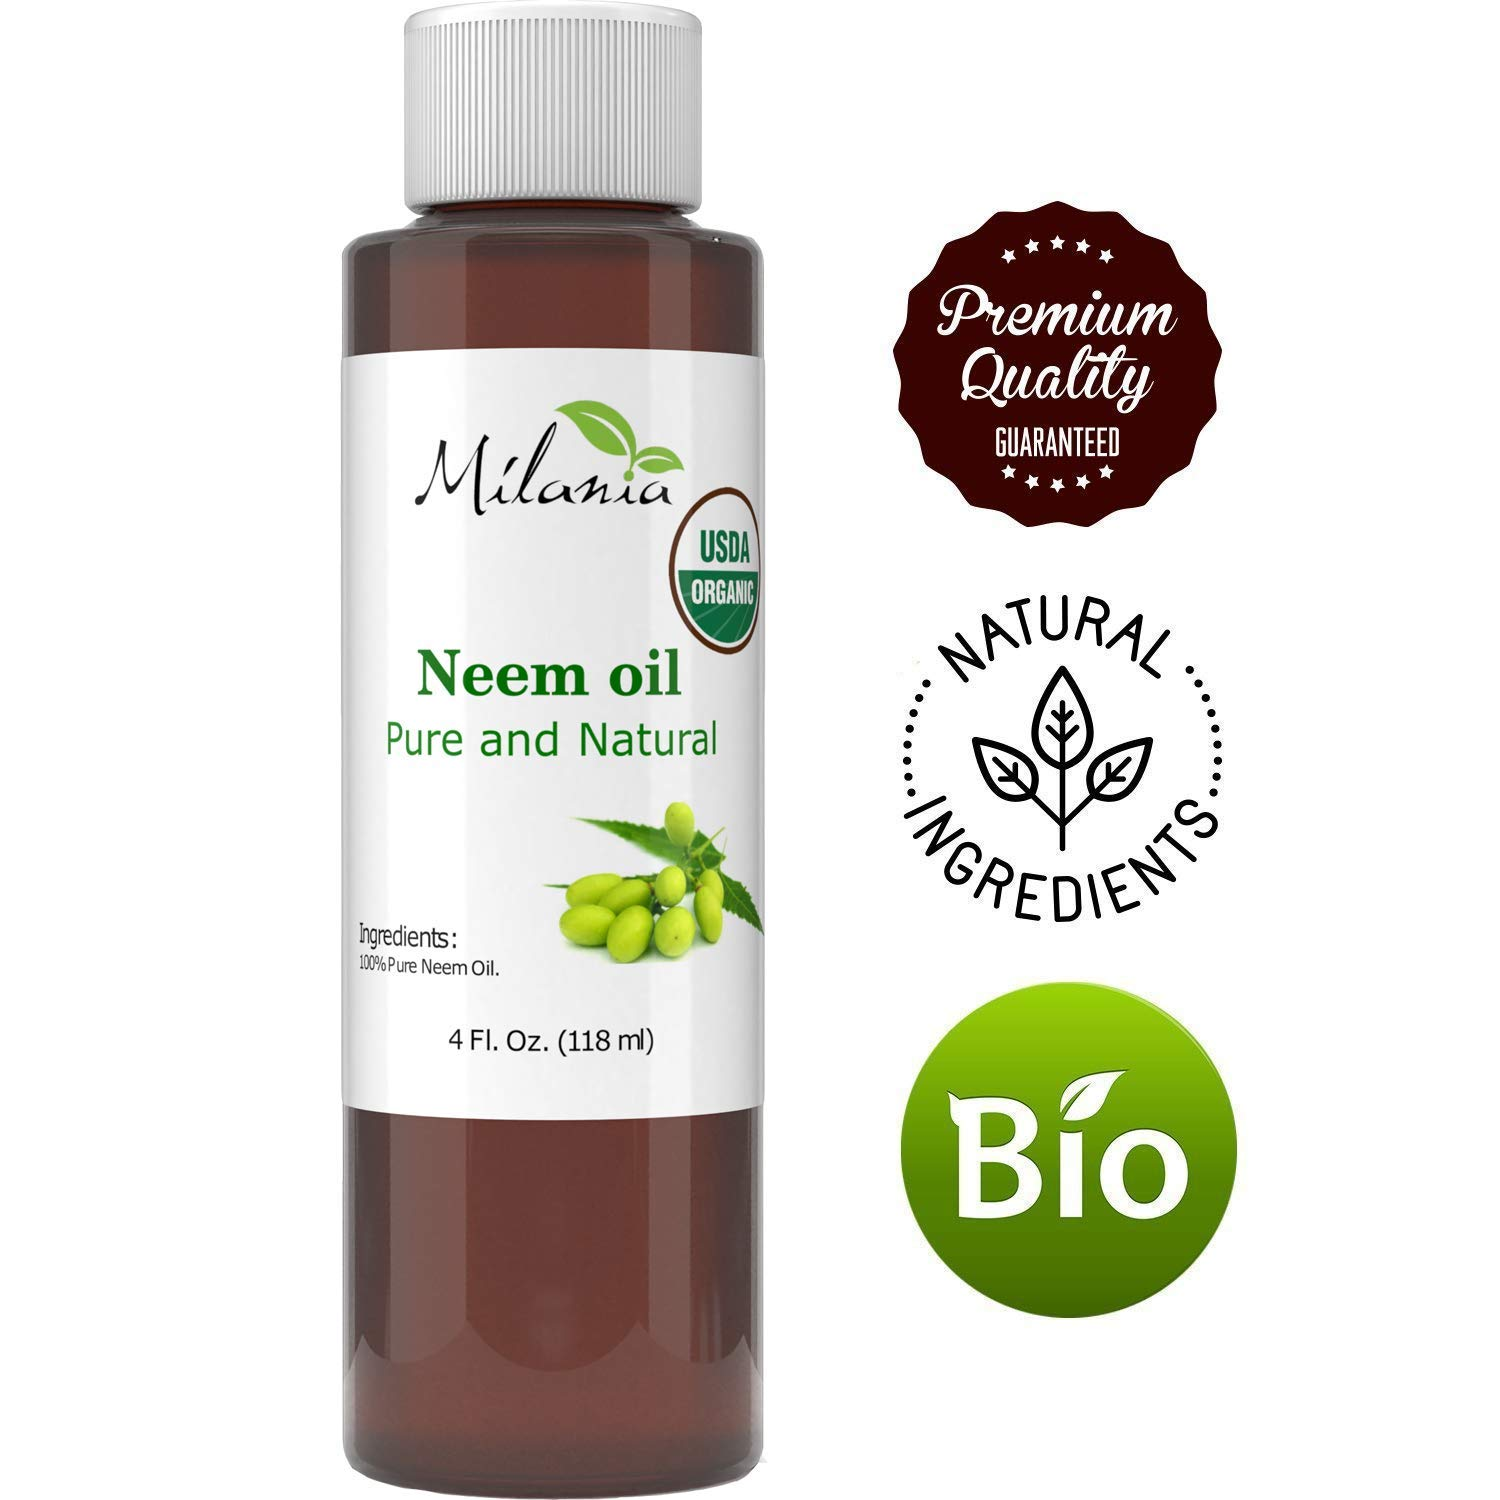 Premium Organic Neem Oil Virgin, Cold Pressed, Unrefined 100% Pure Grade A. Excellent Quality. Same Day Shipping (4 Fl. Oz.)